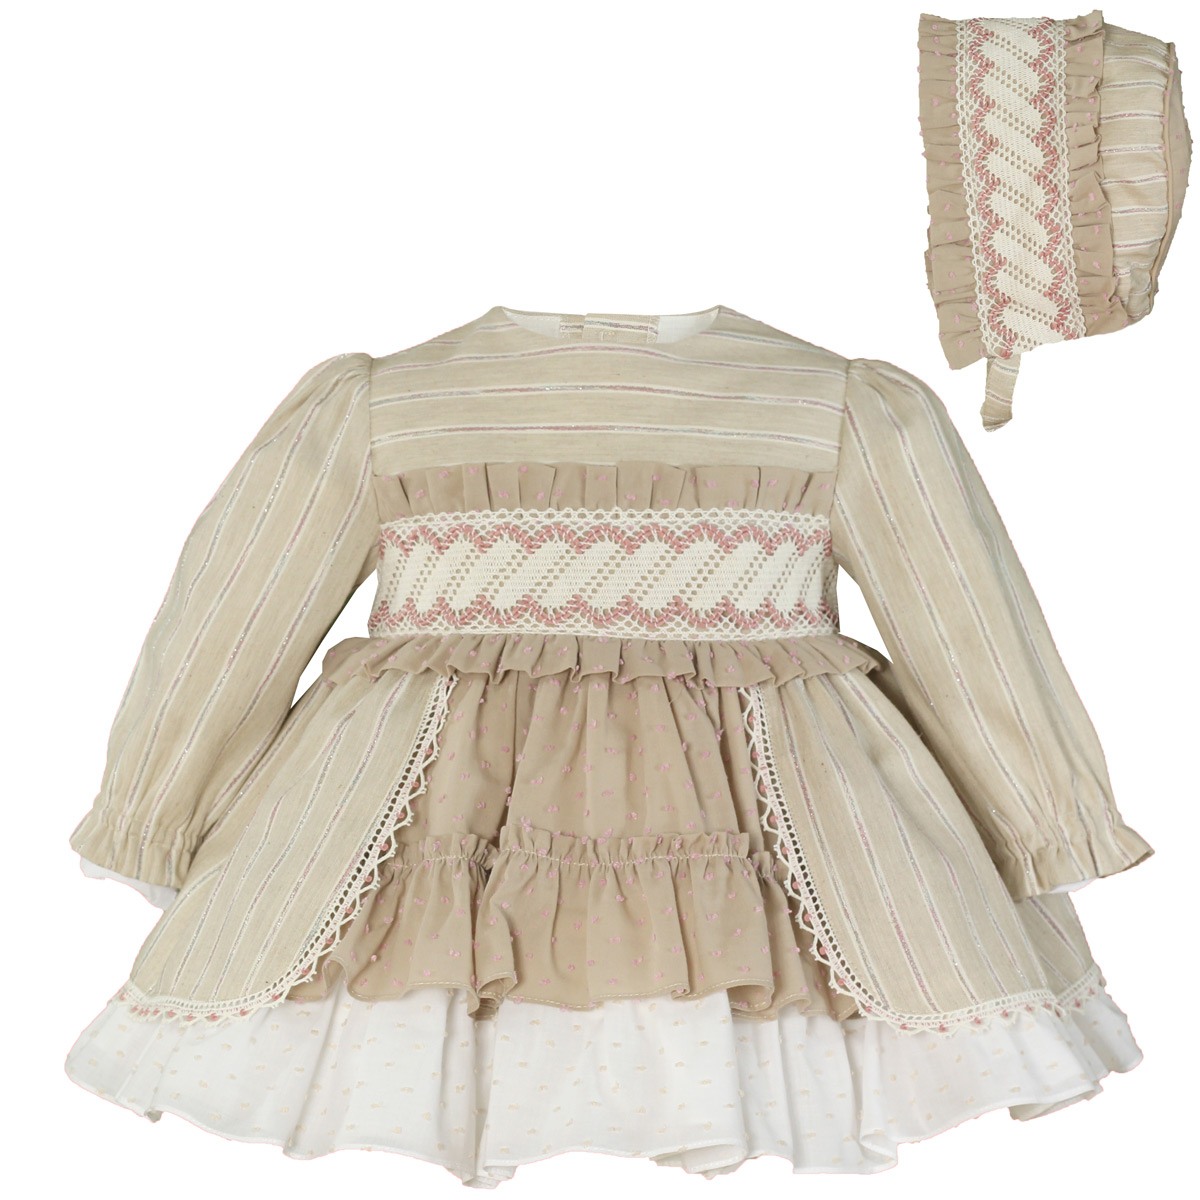 Baby dress and bonnet.